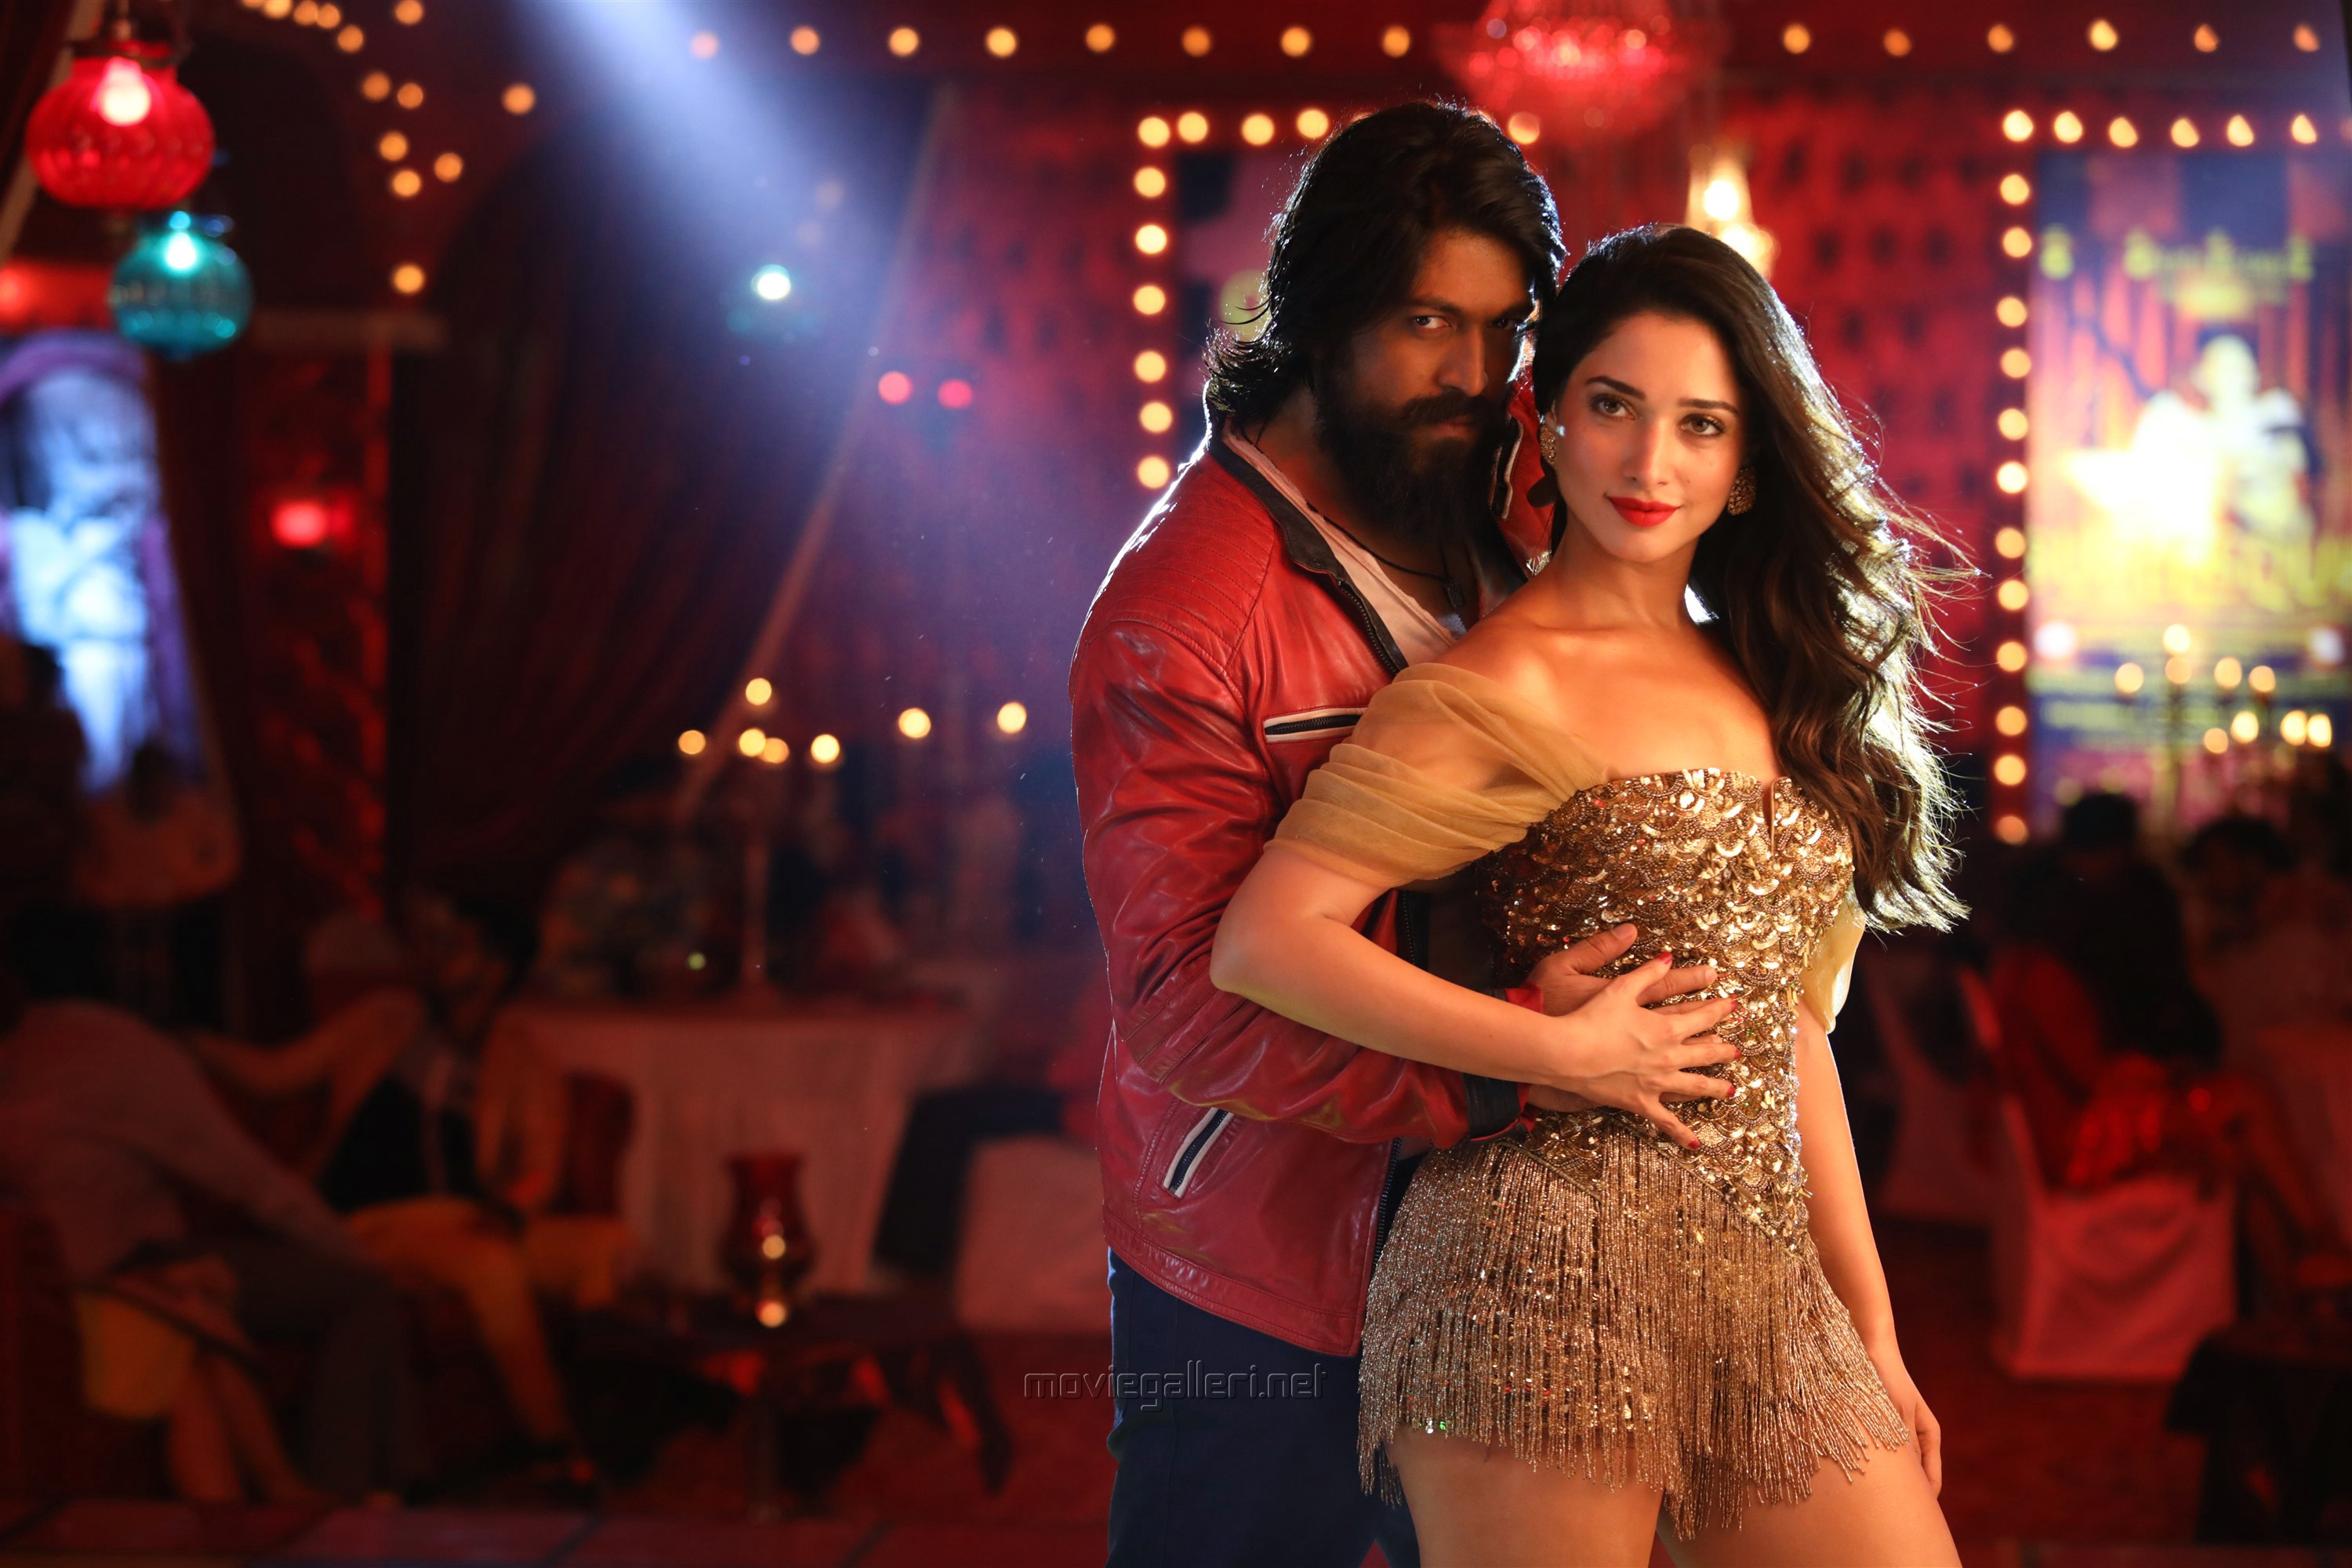 Kgf Movie Images Hd Yash Tamanna New Movie Posters